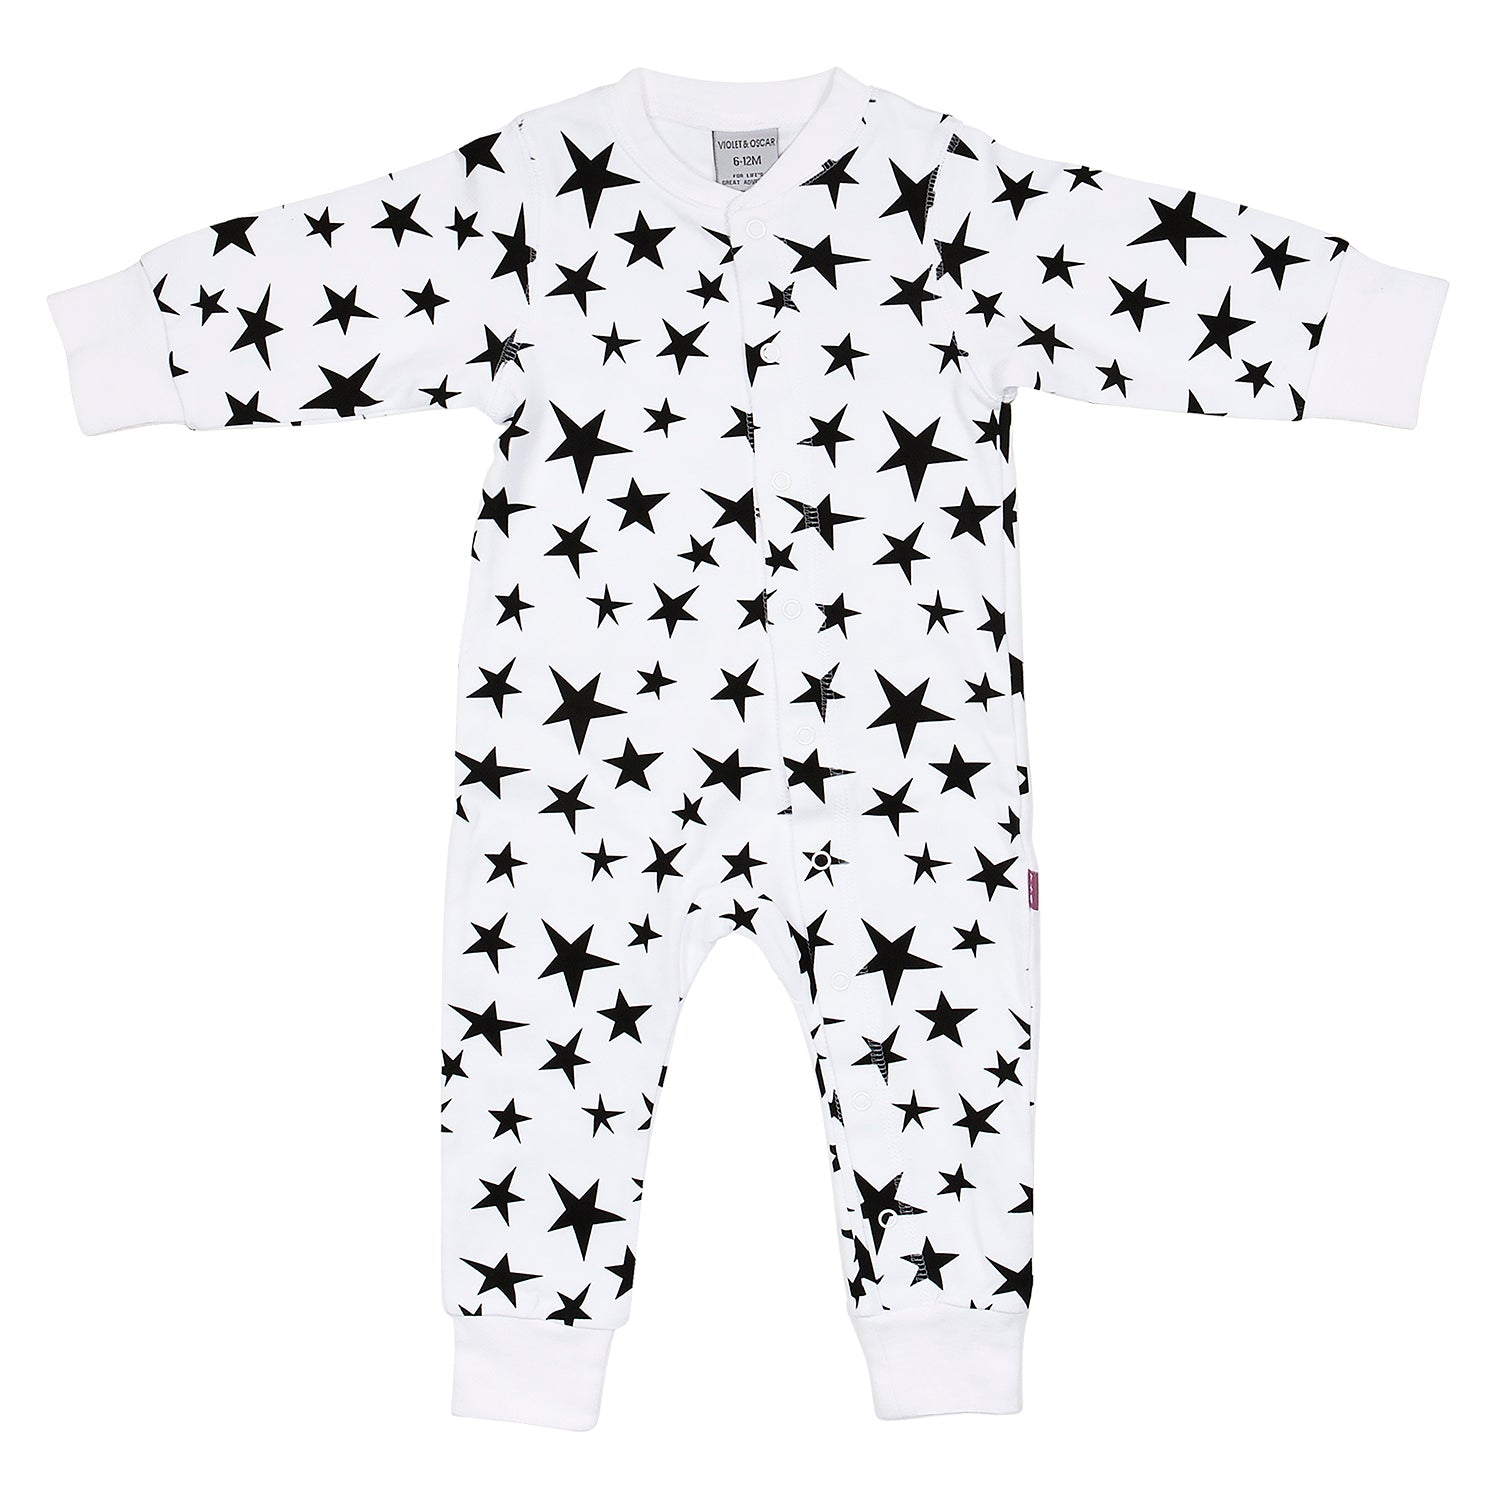 front side of a white 100% cotton sleepsuit for baby's with a bright black star print